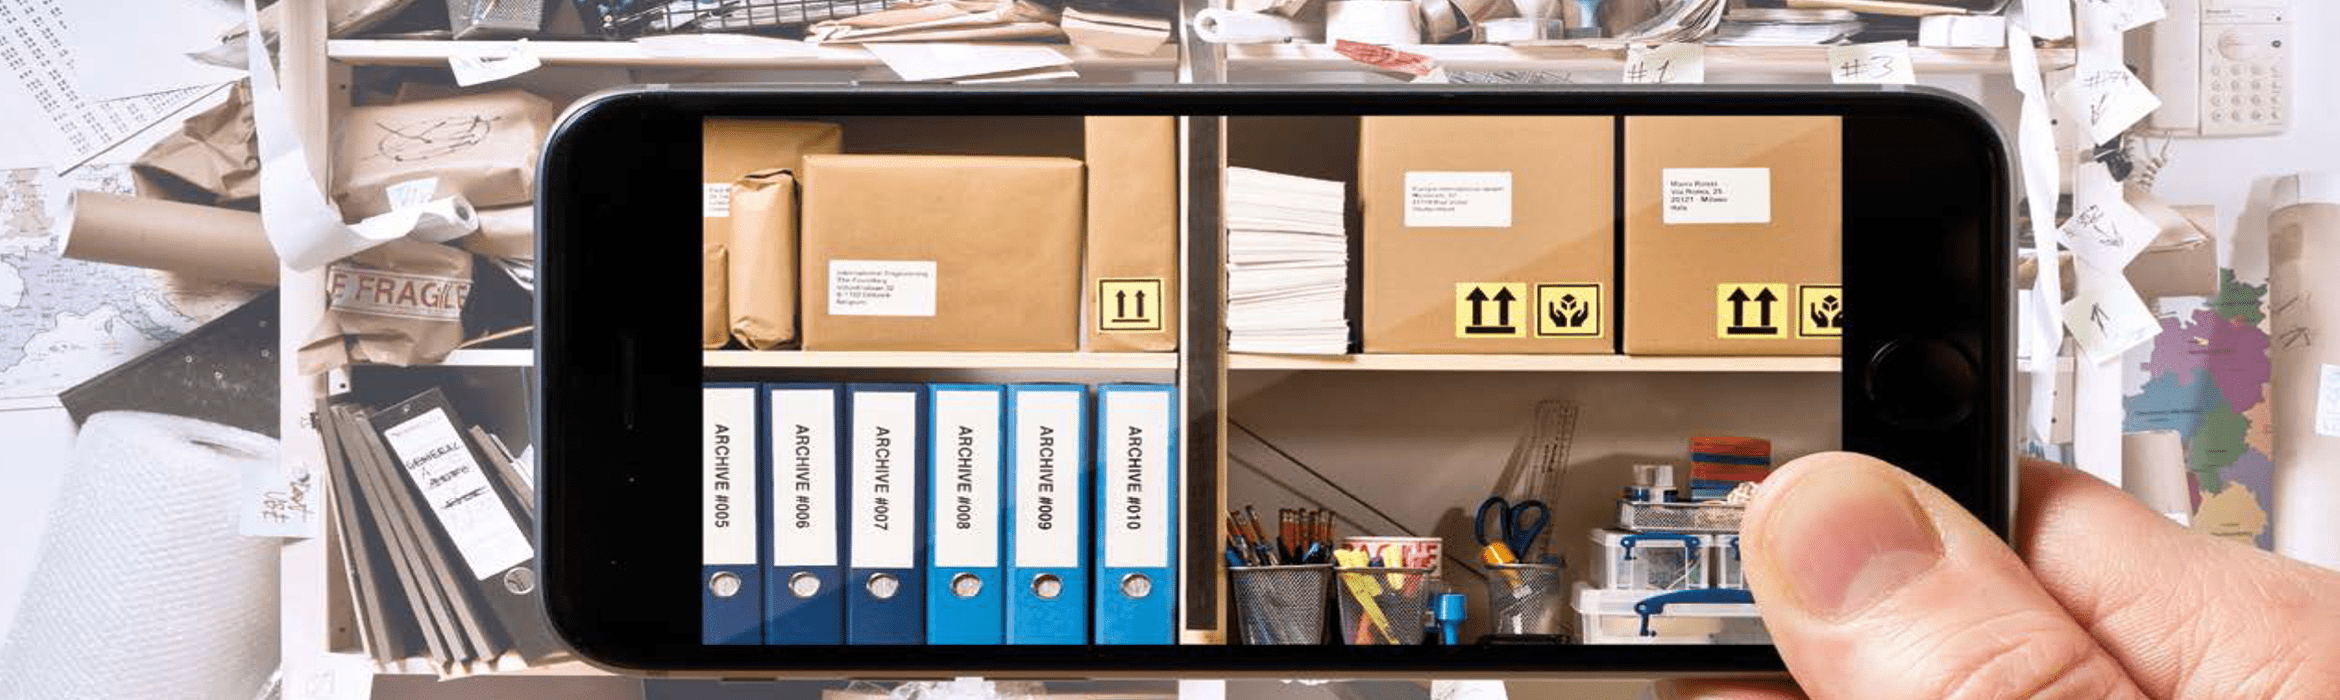 Smartphone shows organised labelled office